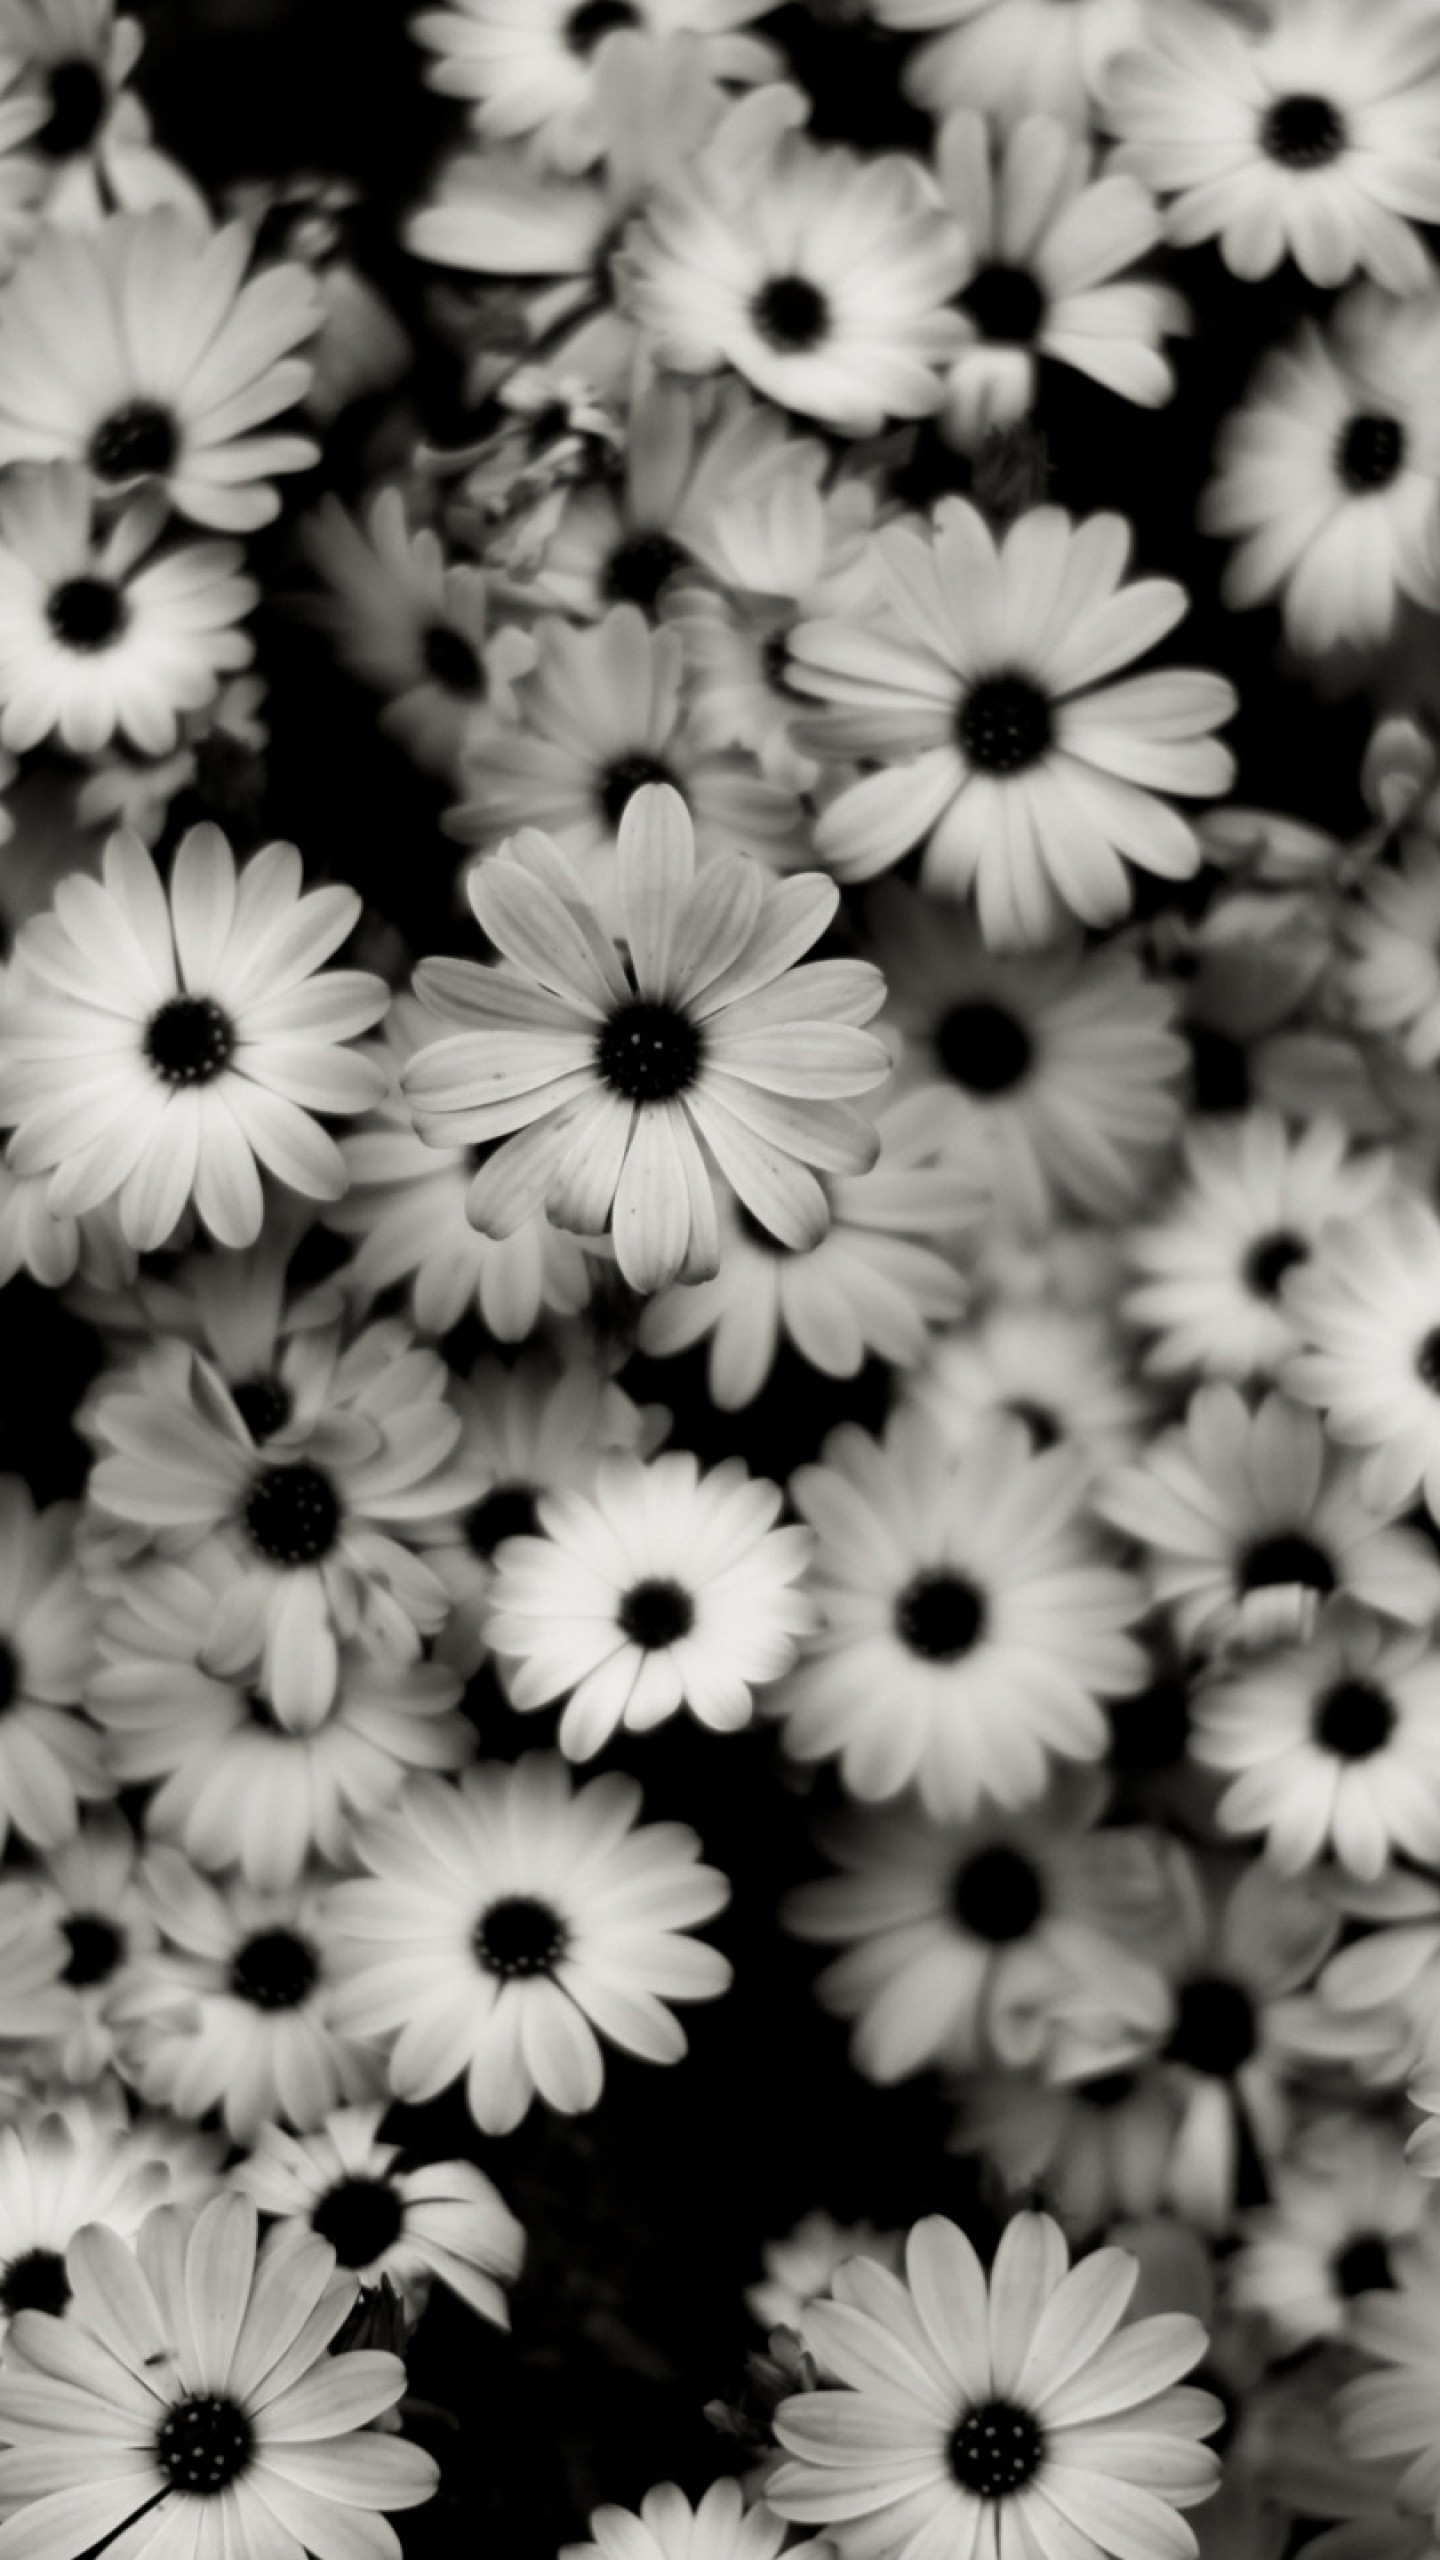 Black and White Roses Wallpaper (56+ images)